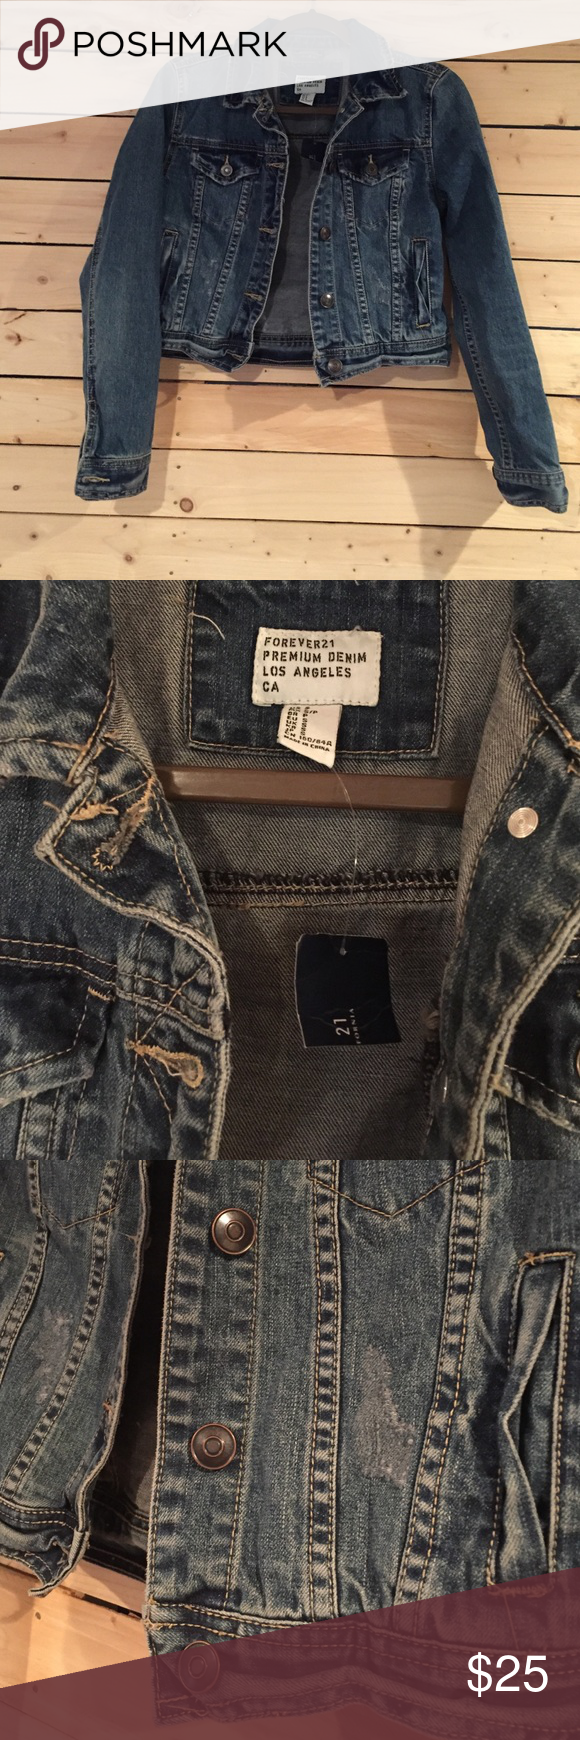 Cropped Denim jacket Not madewell just bloated for exposure. Forever 21 brand. Awesome little jacket!!! New with tag Madewell Jackets & Coats Jean Jackets